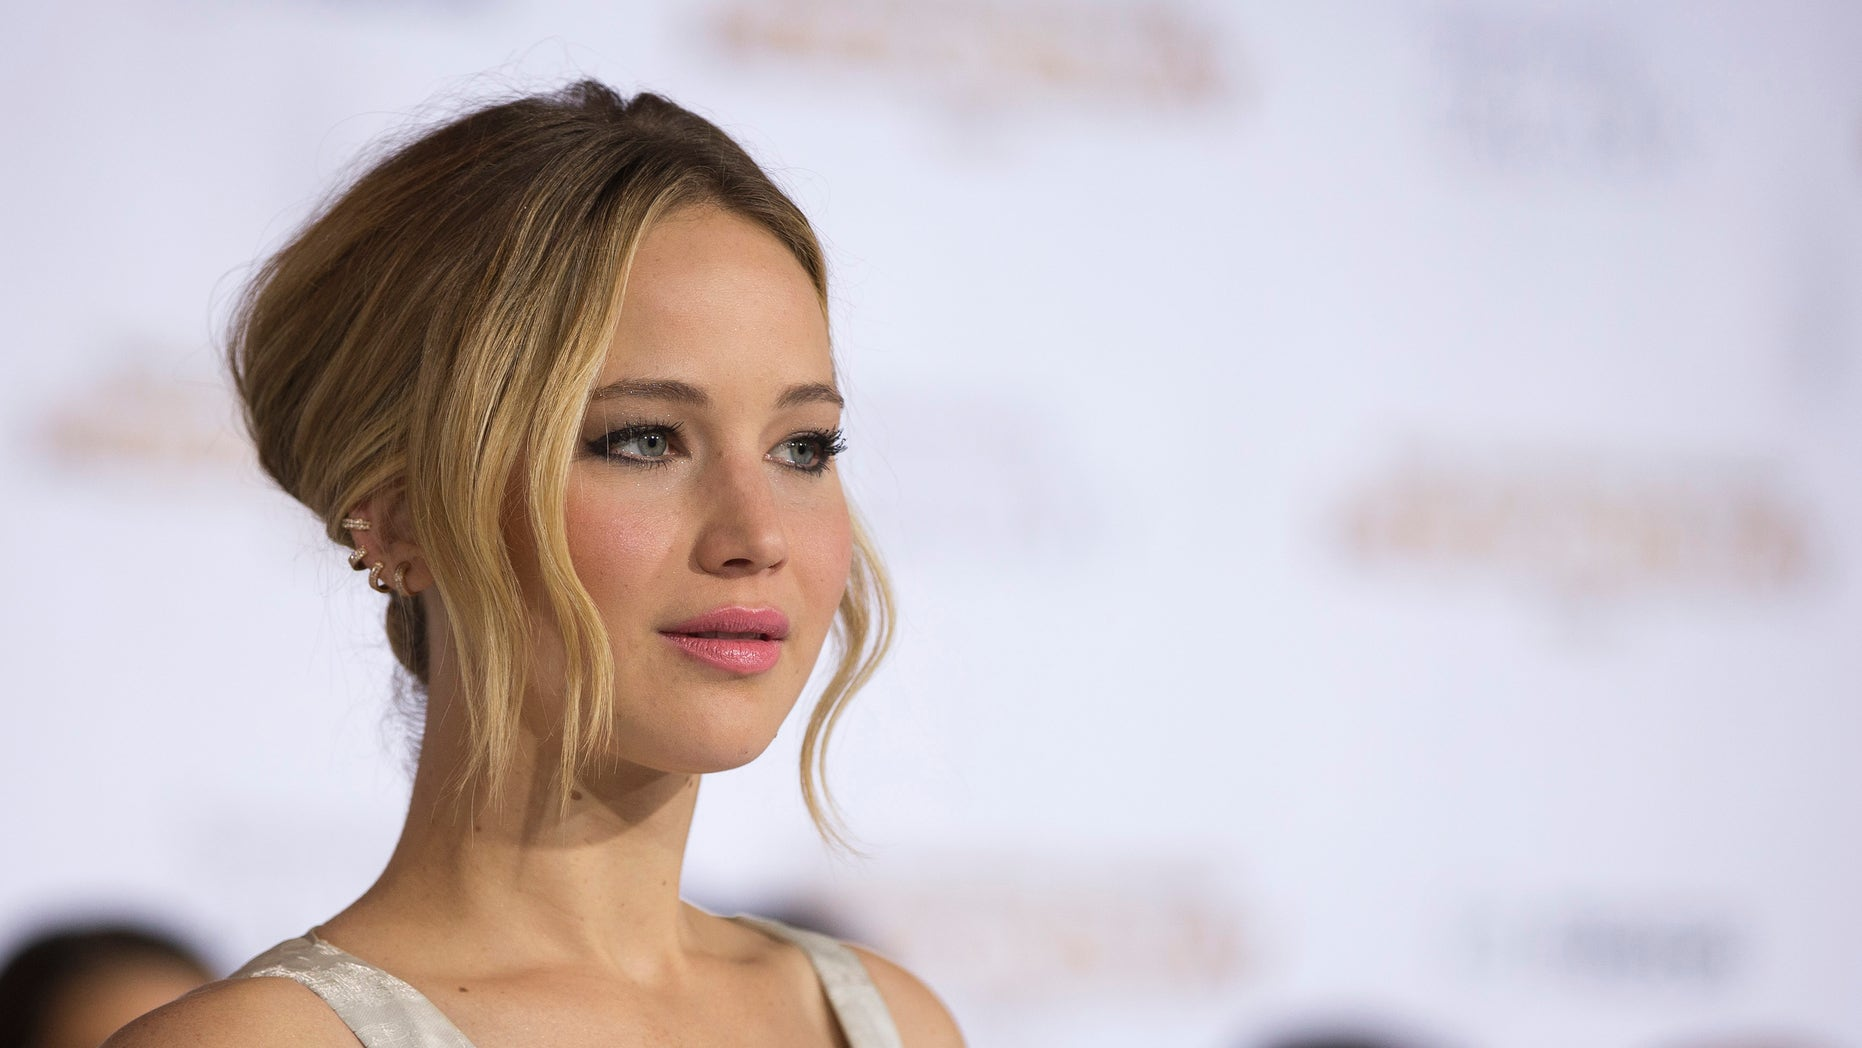 """November 17, 2014. Cast member Jennifer Lawrence poses at the premiere of """"The Hunger Games: Mockingjay - Part 1"""" in Los Angeles."""